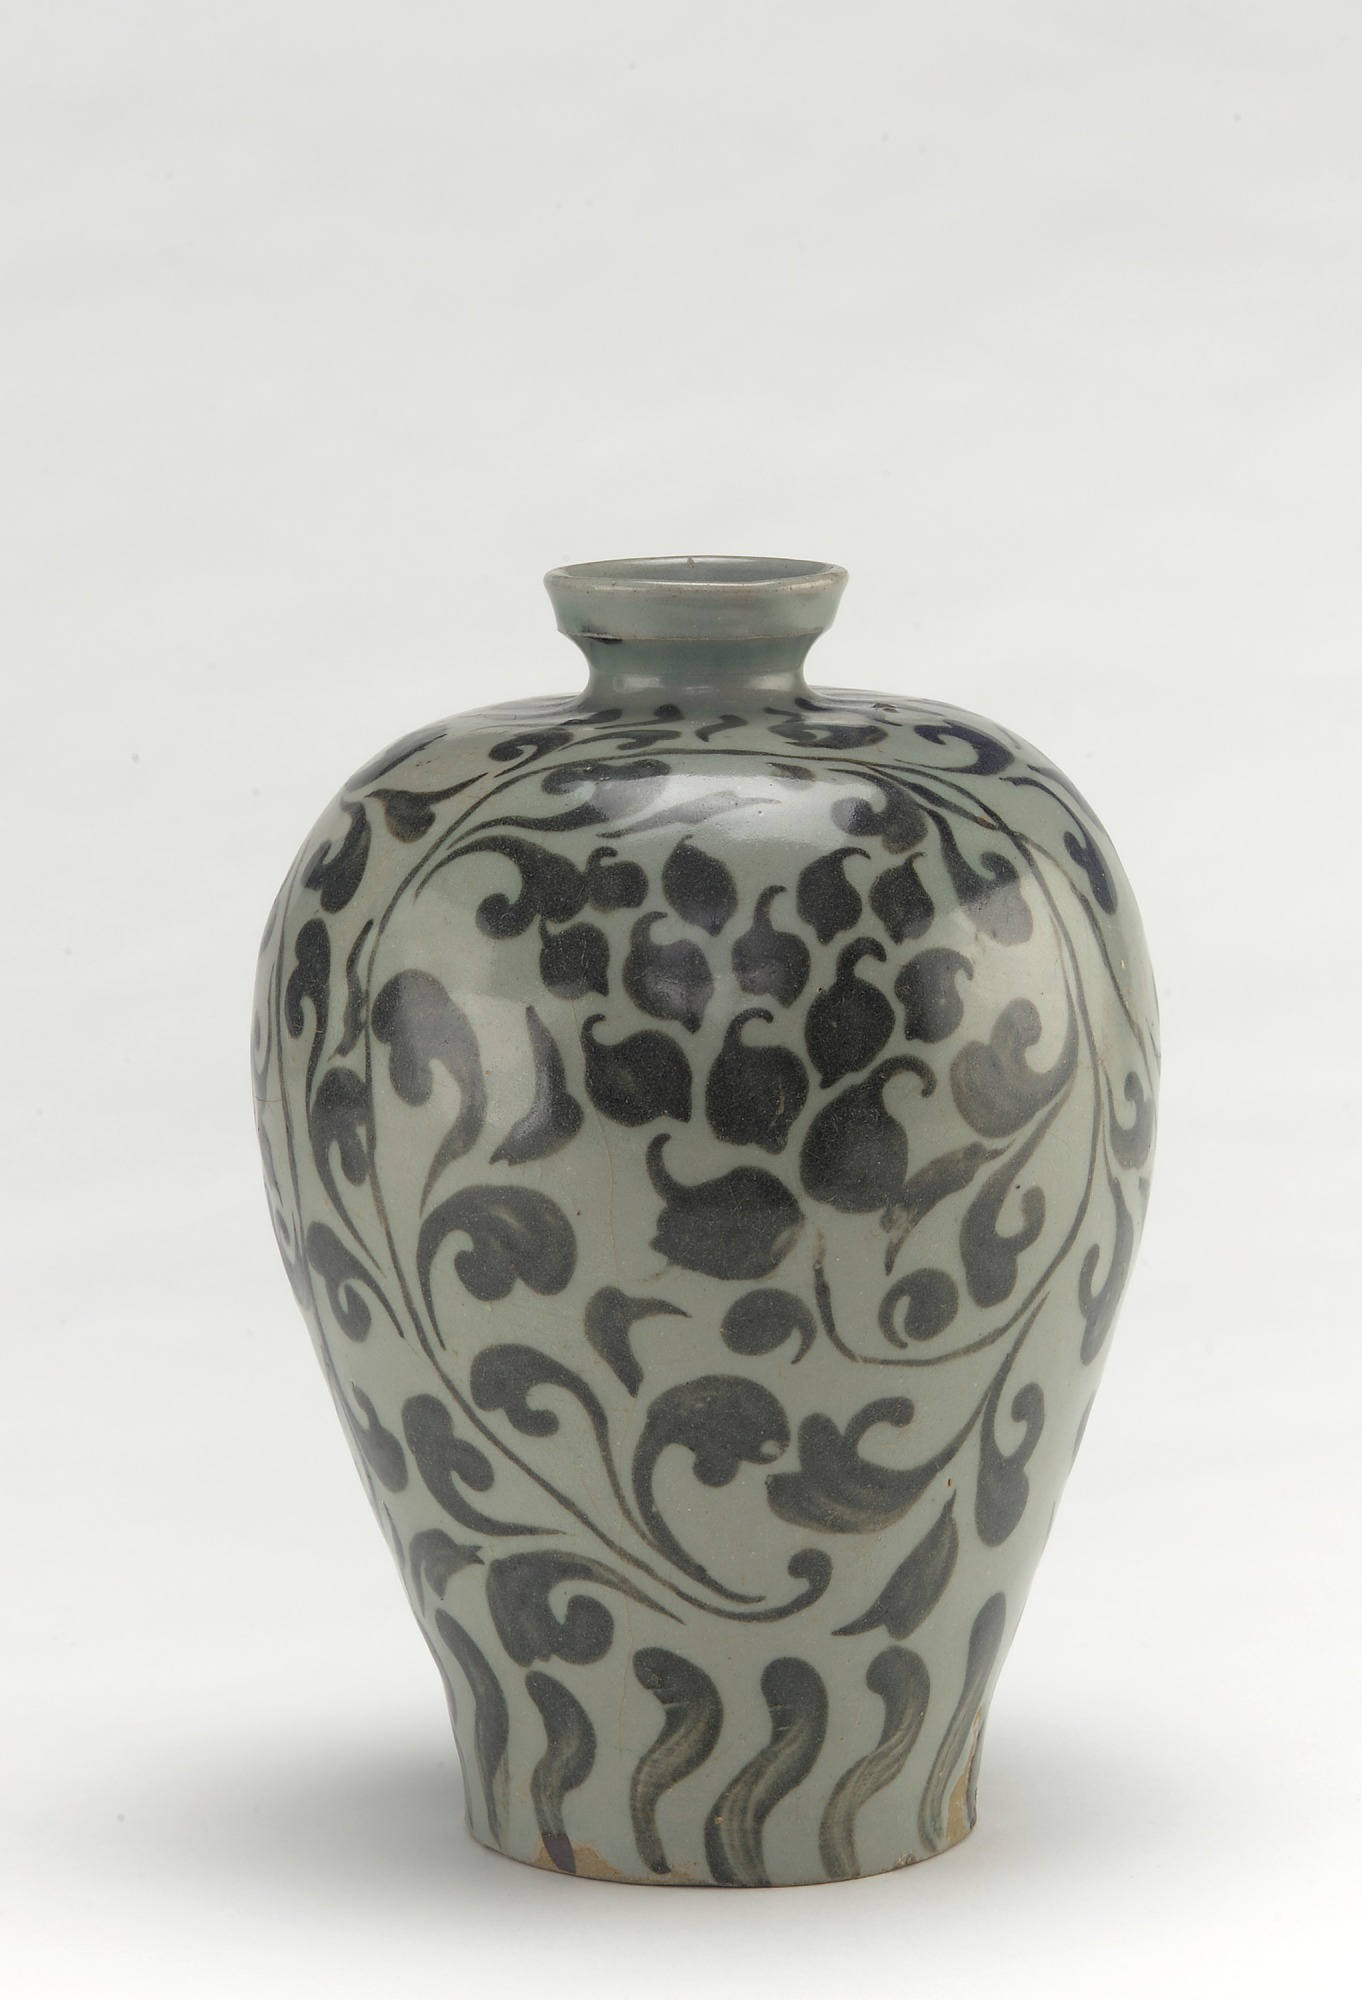 Bottle with design of peony vinescrolls, profile